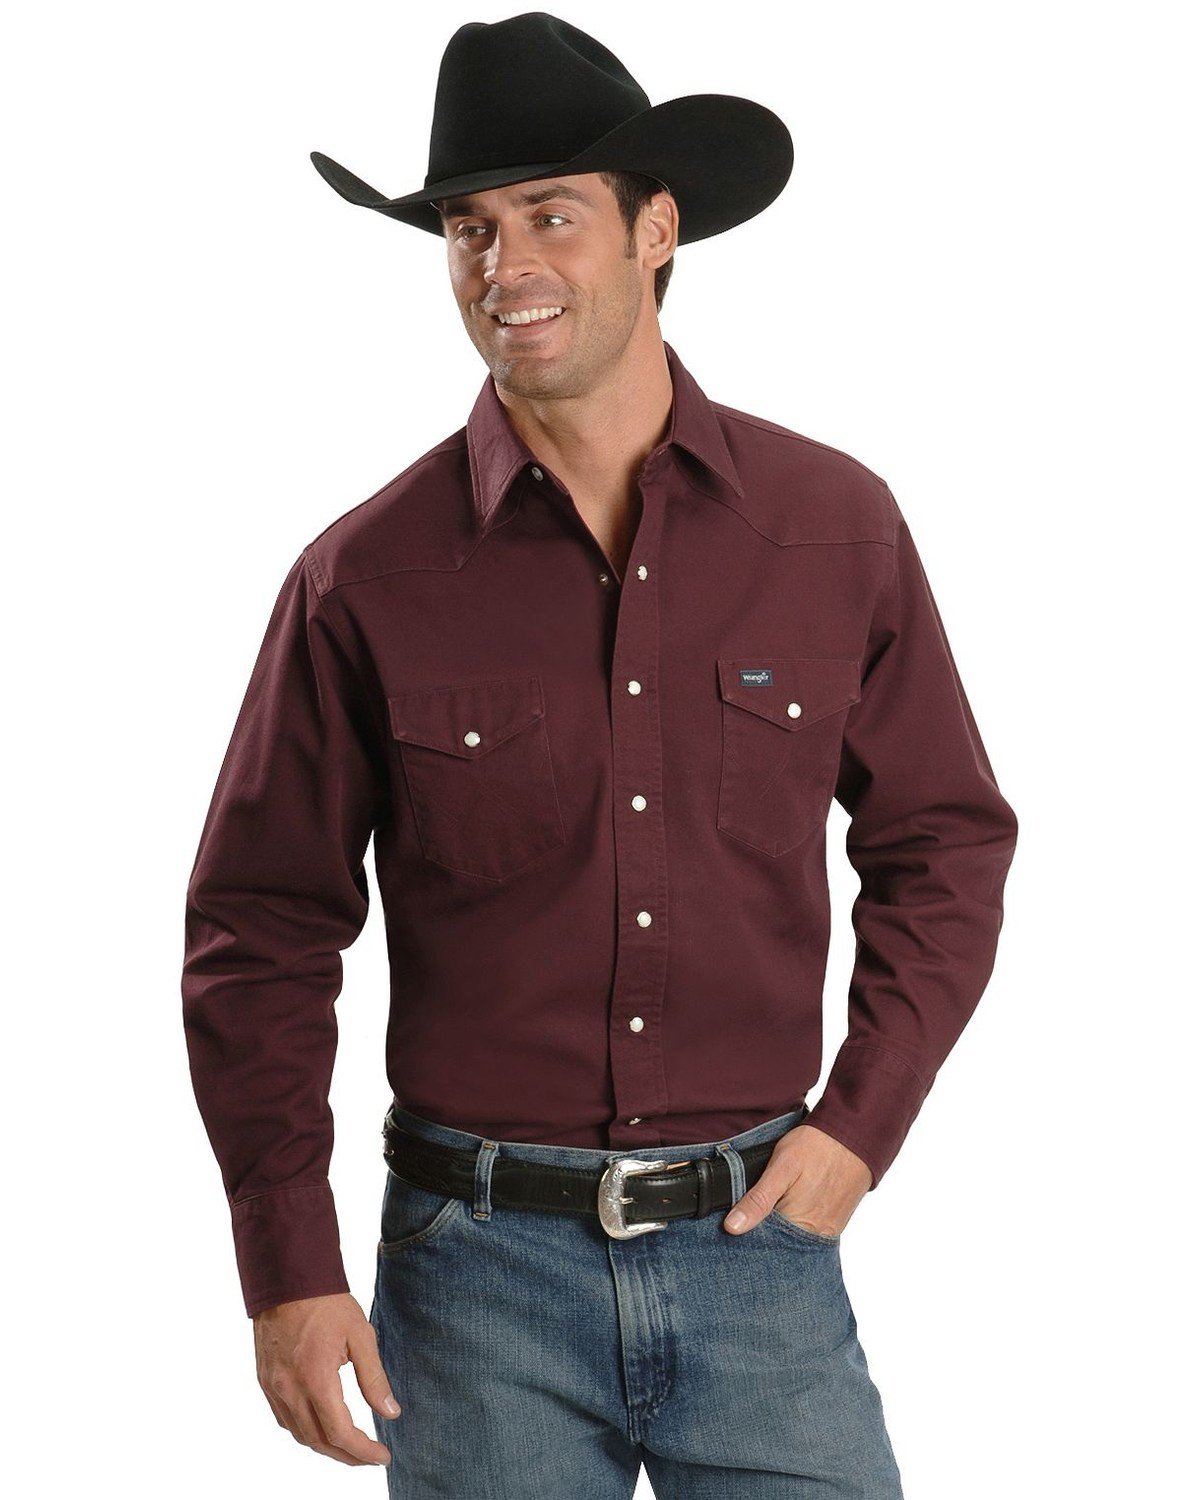 c68f3ca212 Wrangler Western Wear Shirts – EDGE Engineering and Consulting Limited